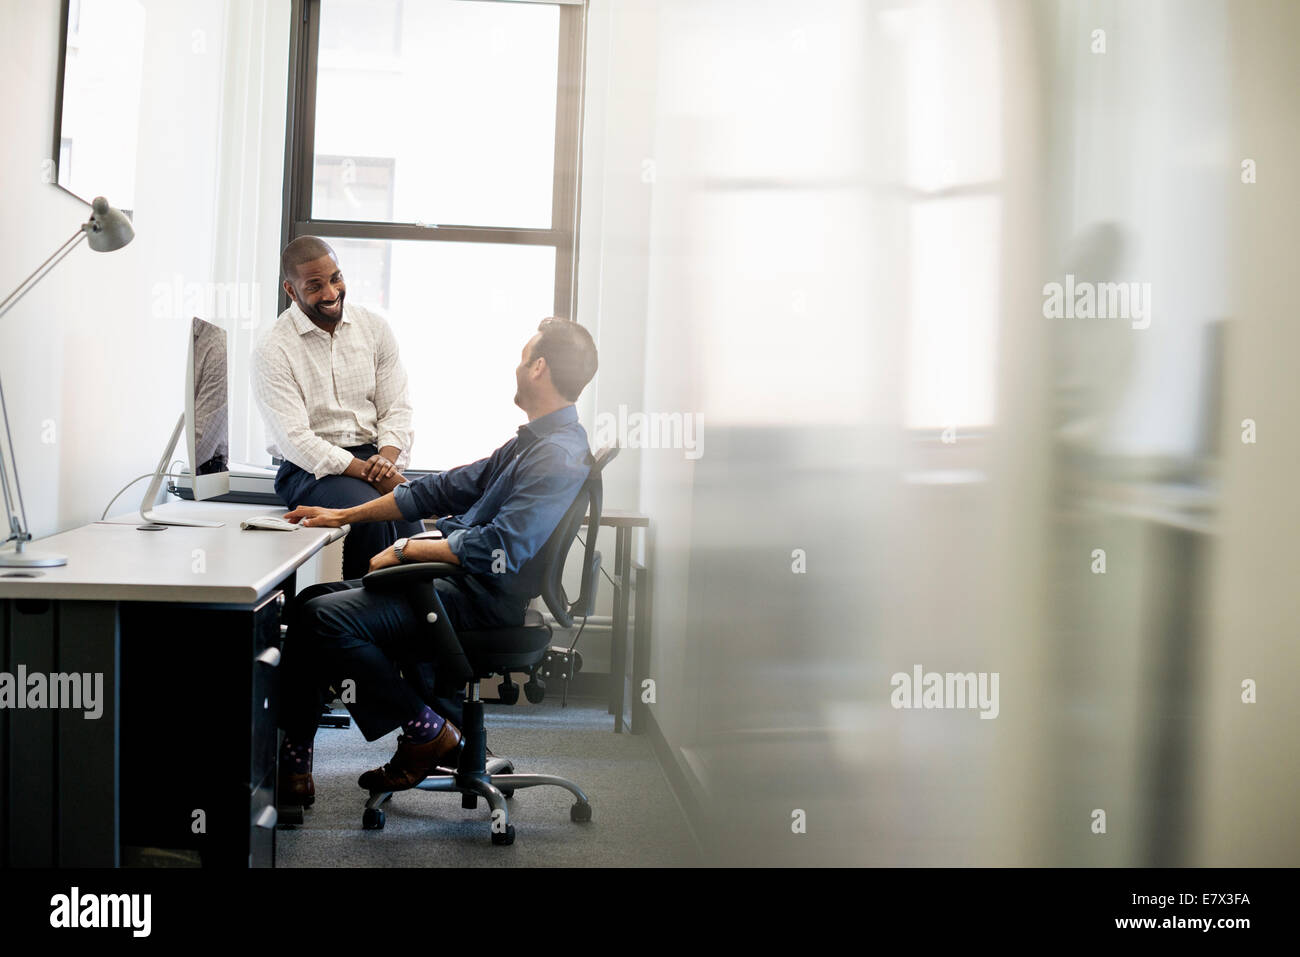 Office life. A man leaning back in an office chair talking to a colleague sitting on the edge of the desk. - Stock Image